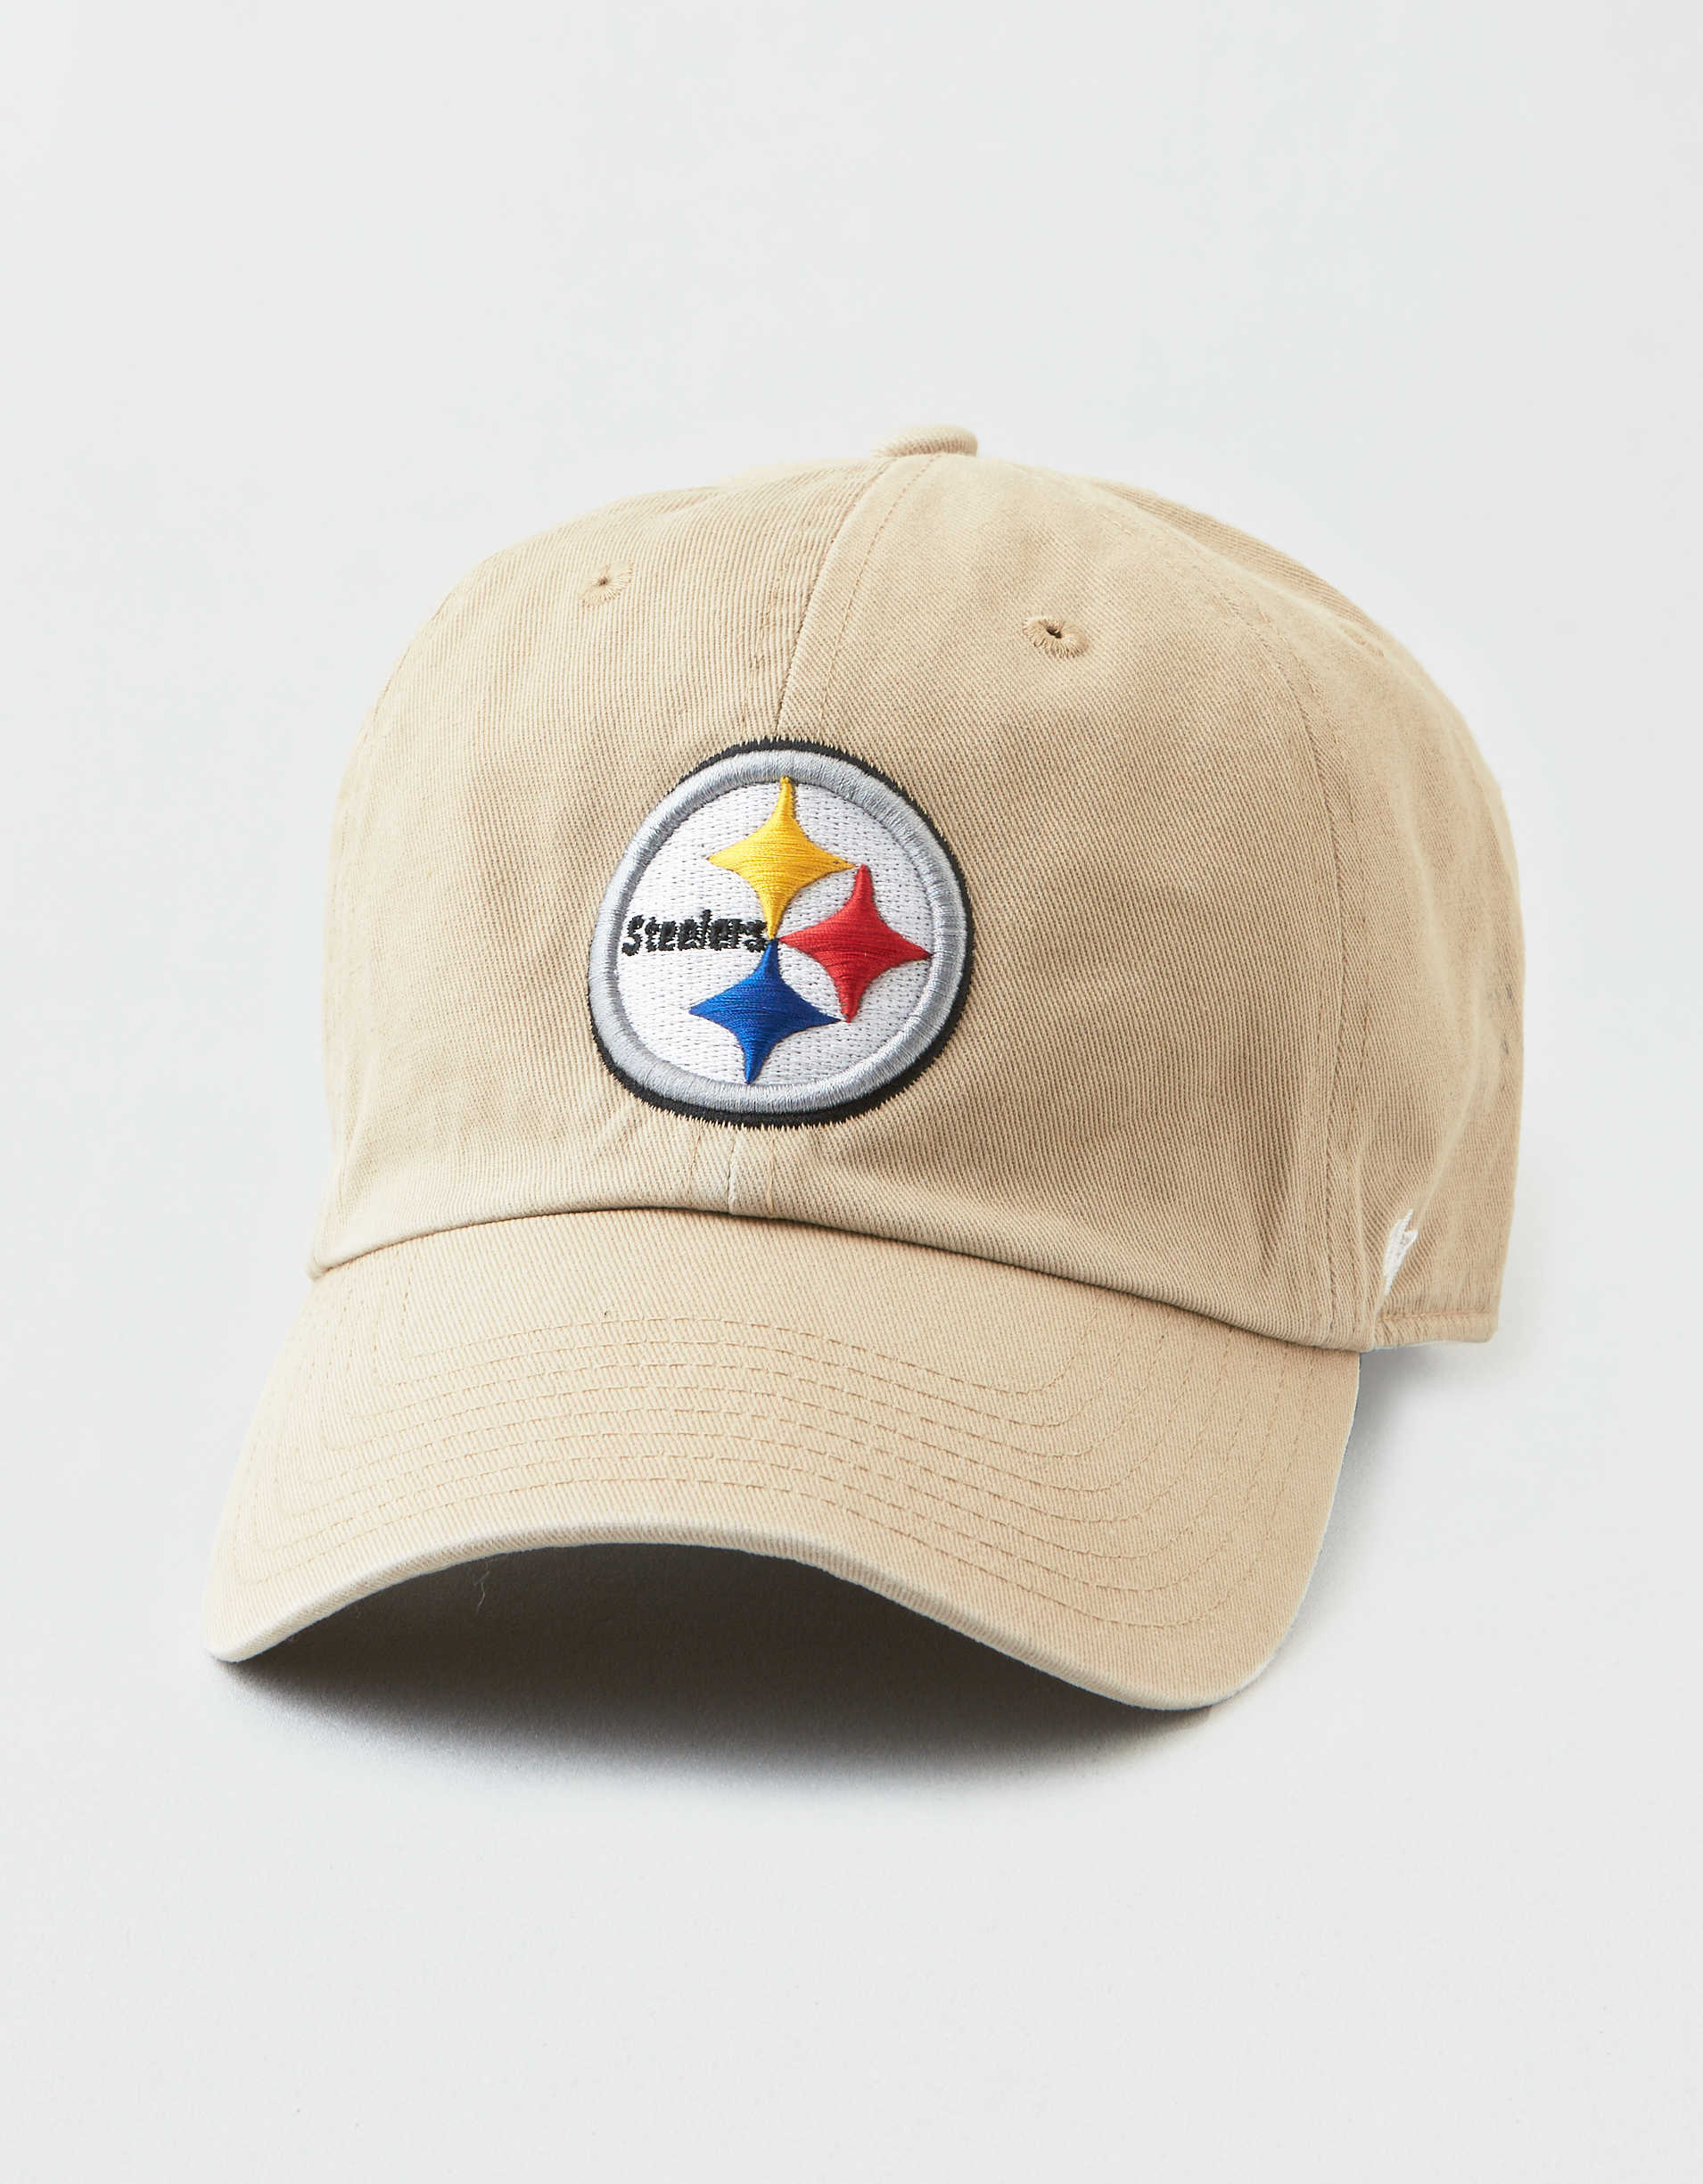 '47 Pittsburgh Steelers Baseball Hat